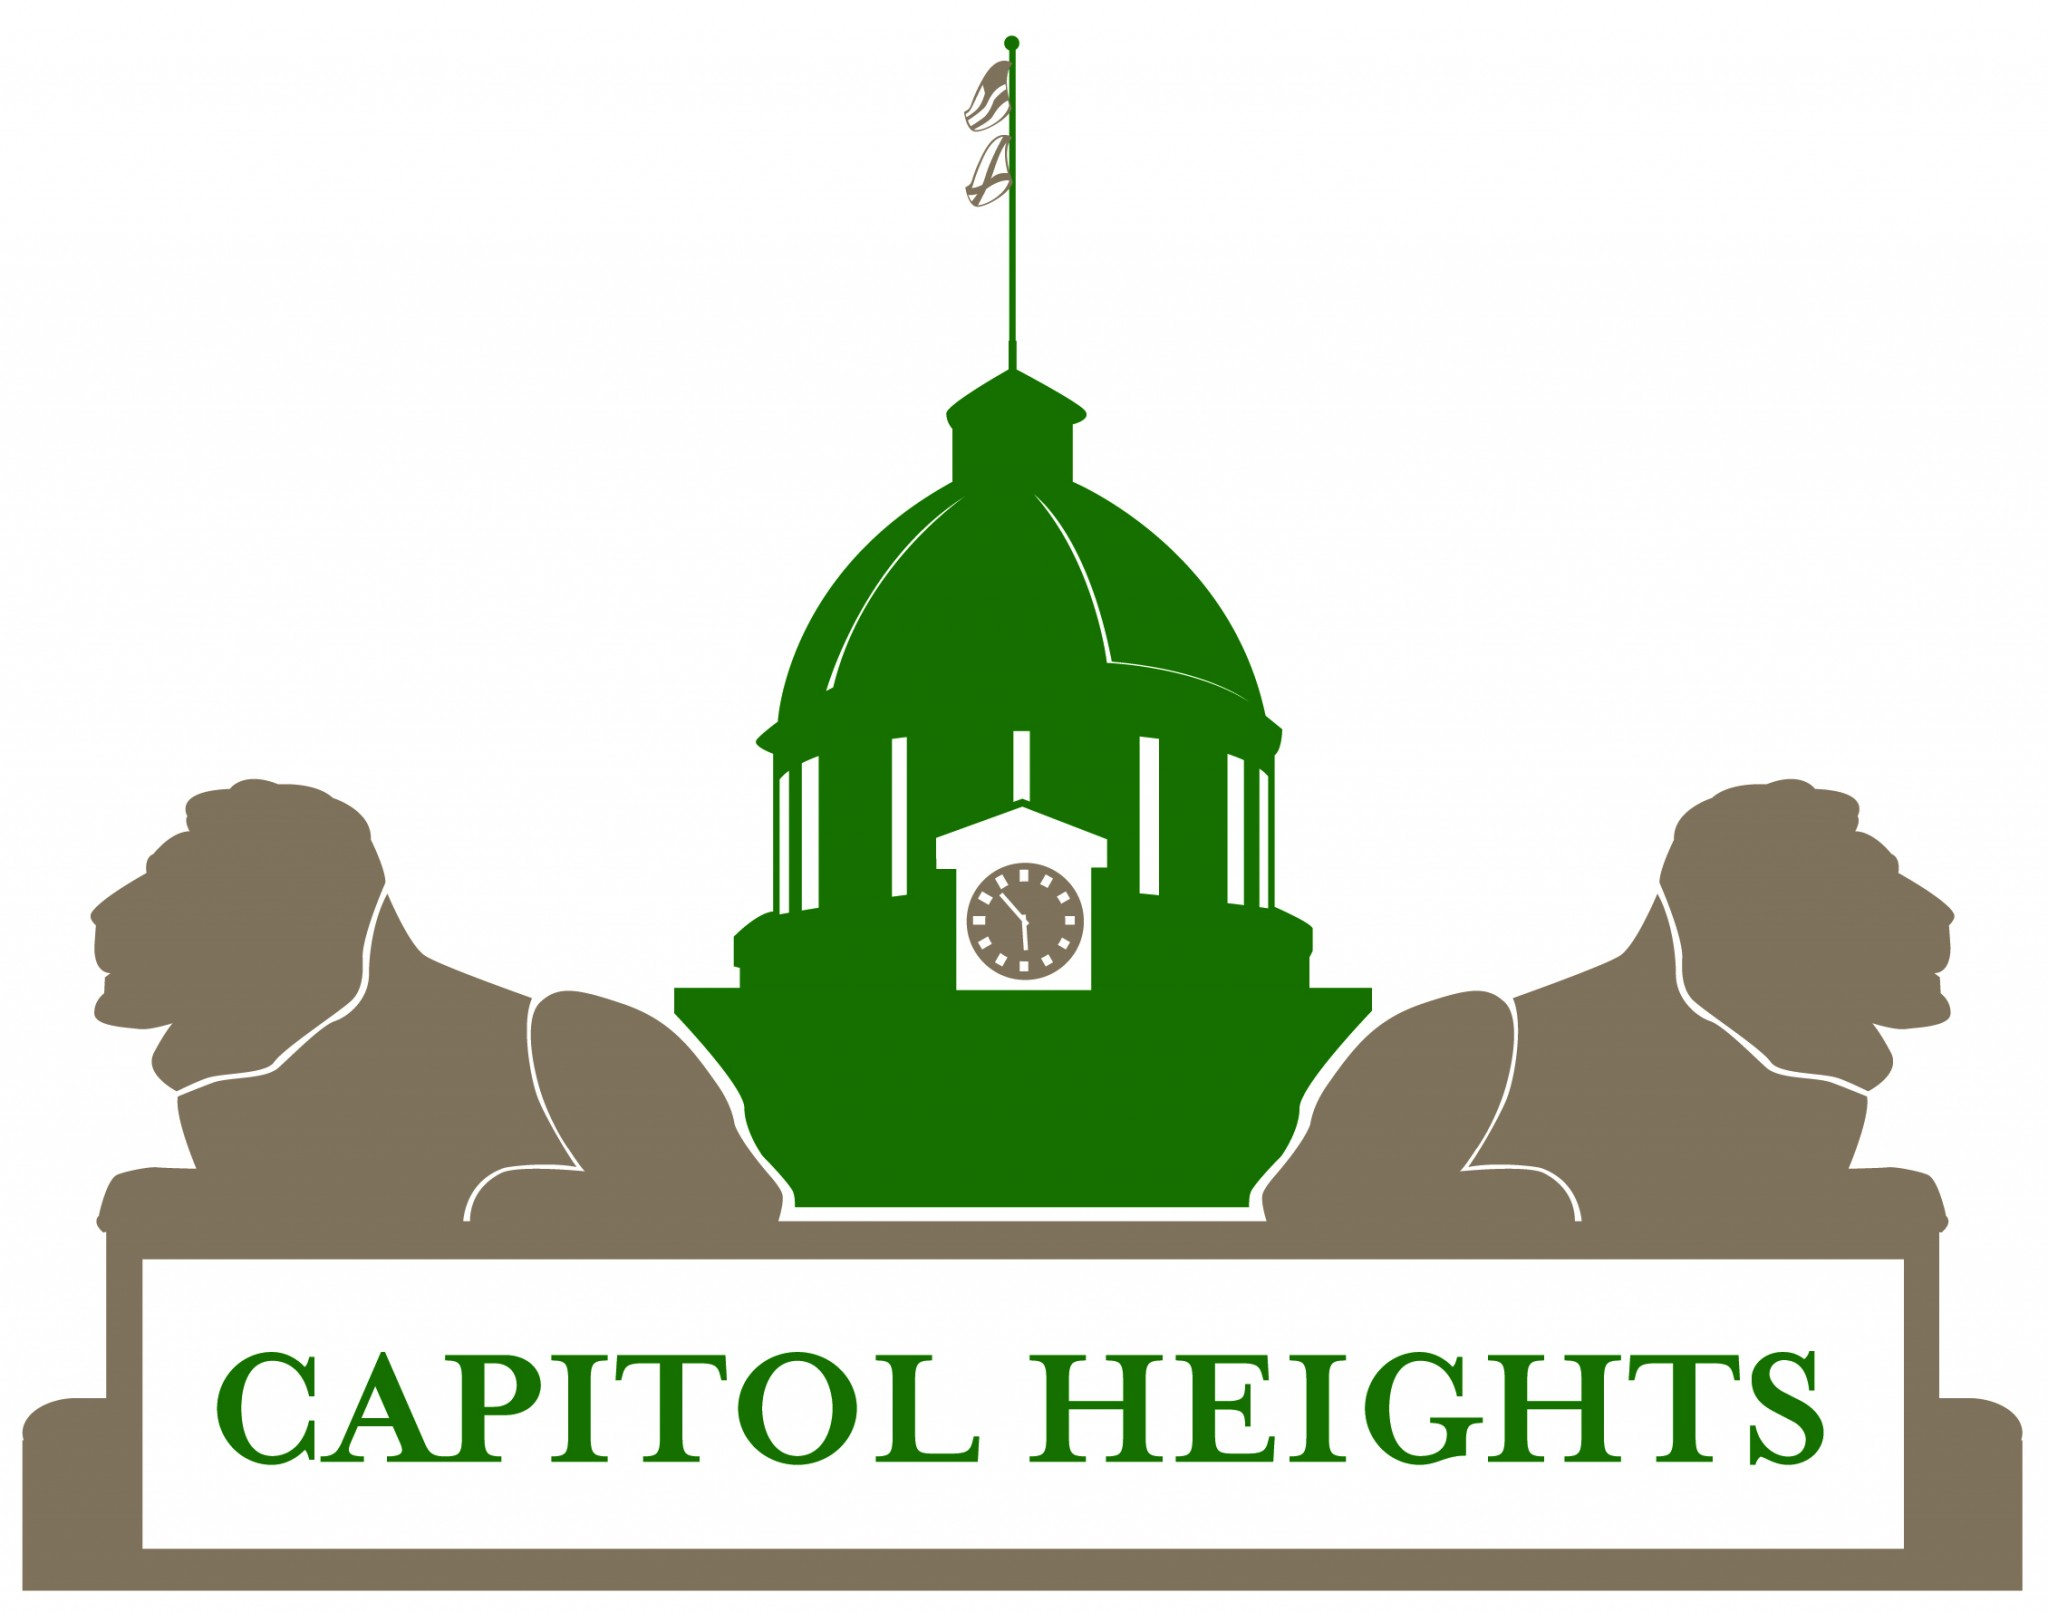 Historic Capitol Heights